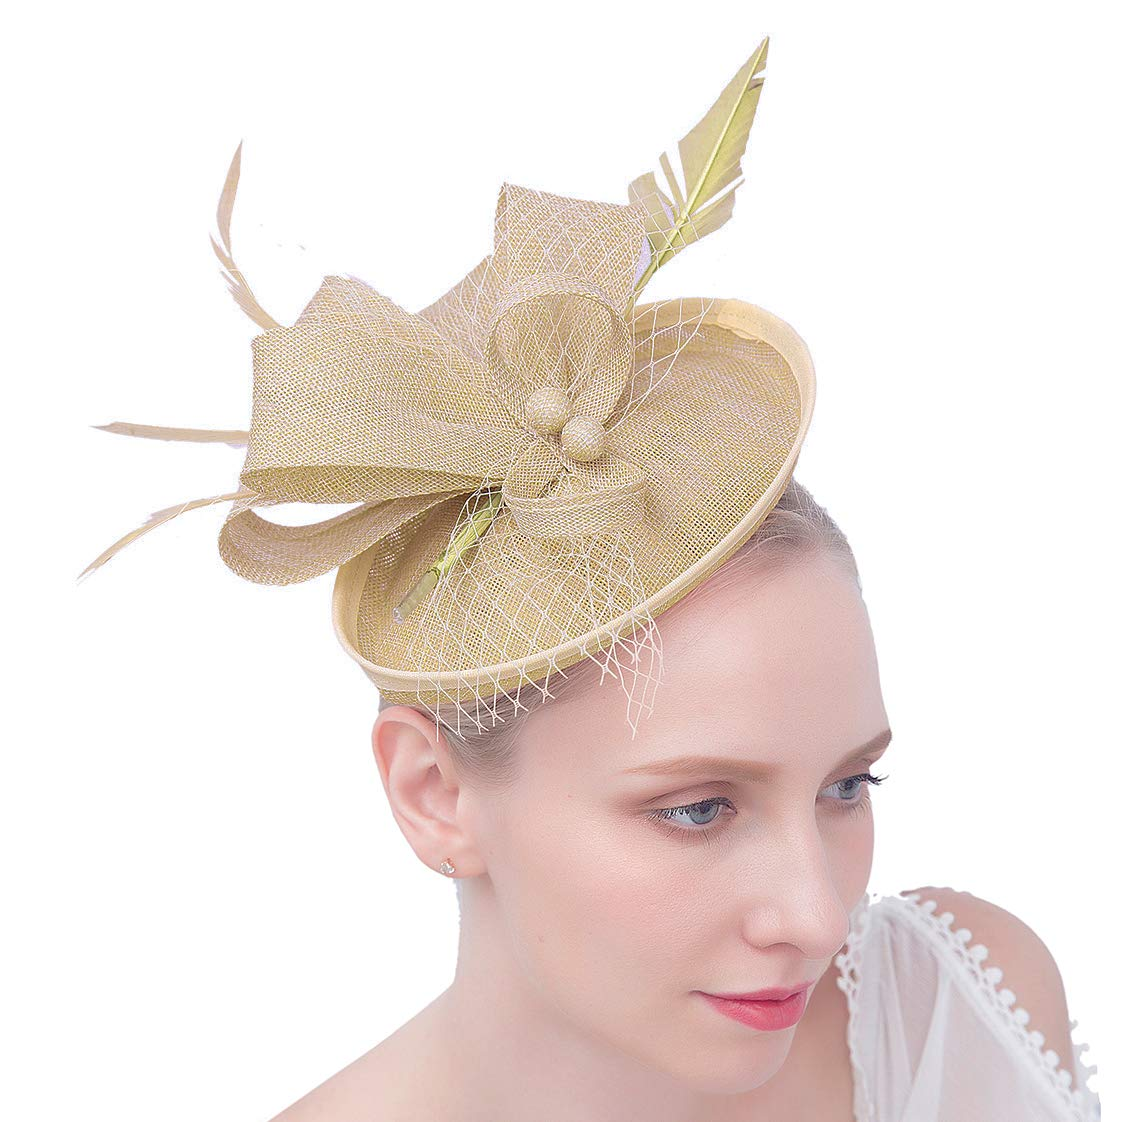 Felizhouse Fascinator Hats Women Ladies Feather Cocktail Party Hats Bridal Headpieces Kentucky Derby Ascot Fascinator Headband (#2 Cambric Khaki)